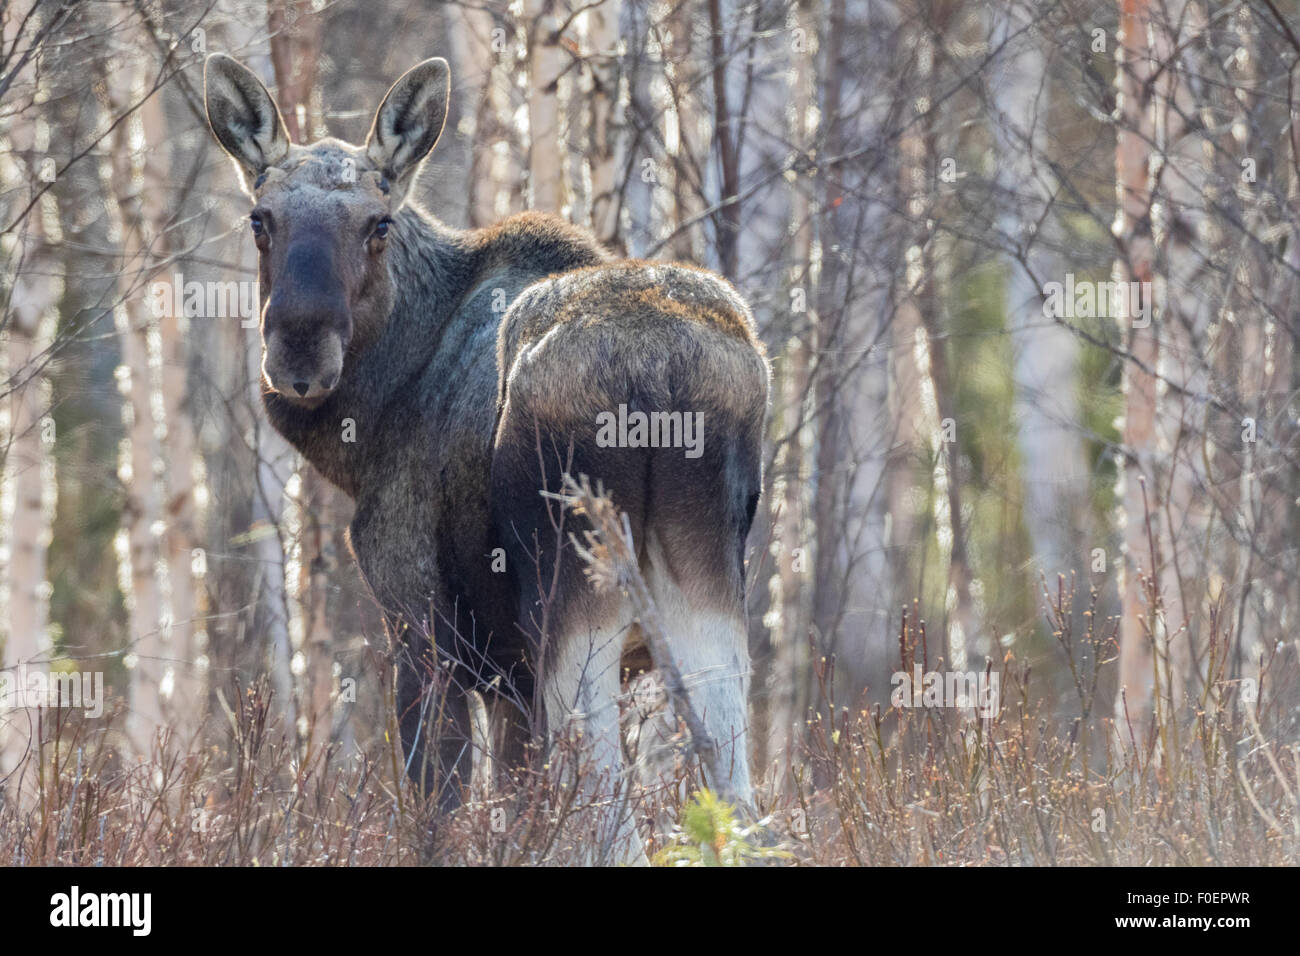 Moose, Alces alces, standing among birches with no leaves, llooking in to camera, gällivare, Swedish Lapland, Sweden Stock Photo